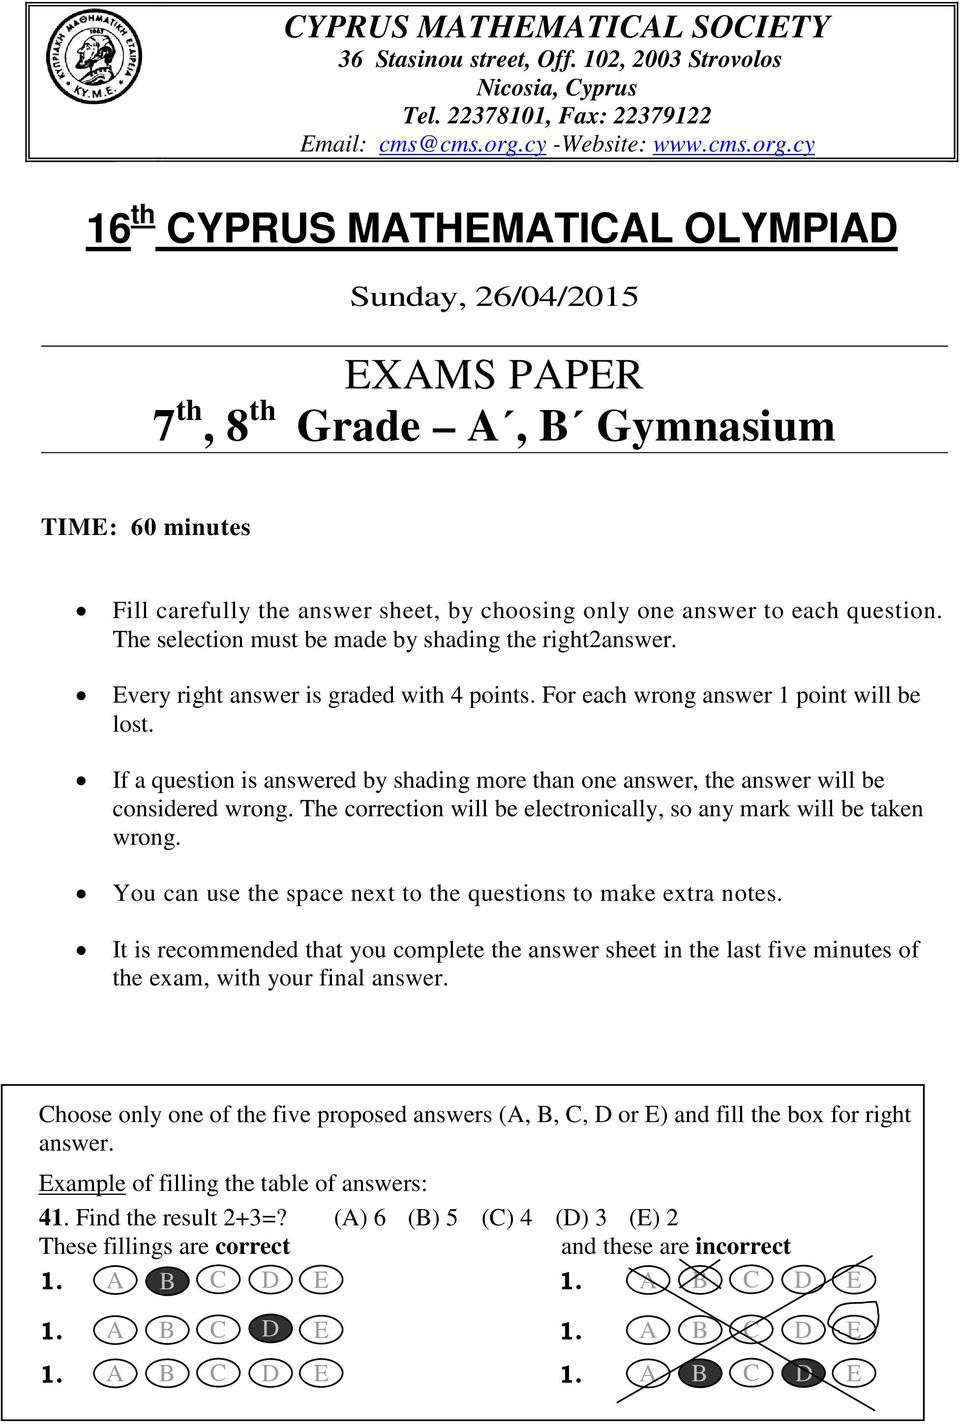 cy 16 th CYPRUS MATHEMATICAL OLYMPIAD Sunday, 26/04/2015 EXAMS PAPER 7 th, 8 th Grade A, B Gymnasium TIME: 60 minutes Fill carefully the answer sheet, by choosing only one answer to each question.